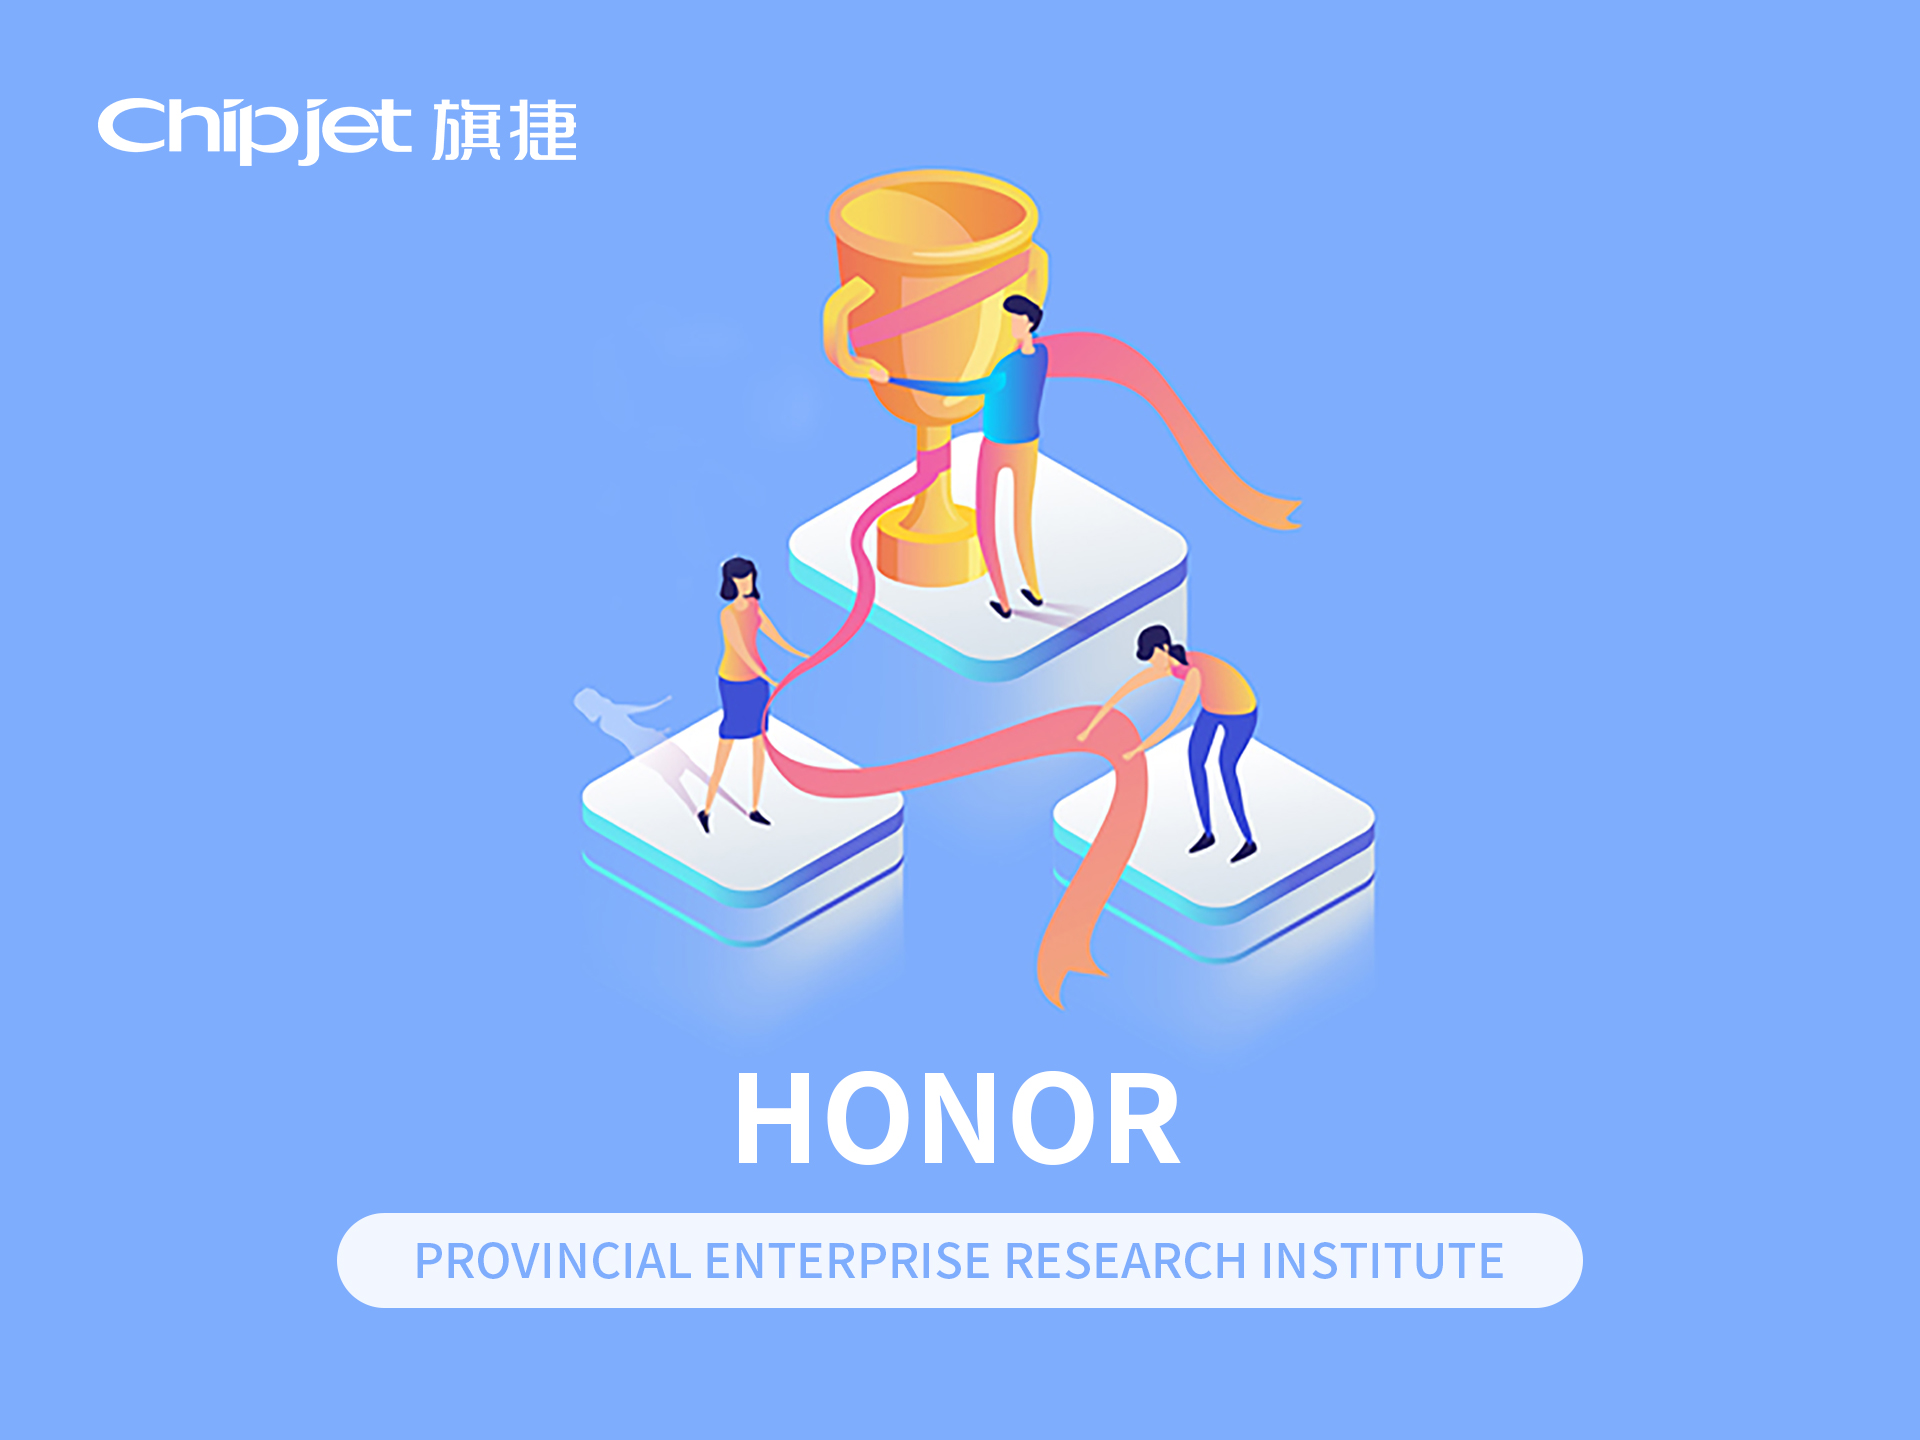 A New Honor! Congratulations to Chipjet!